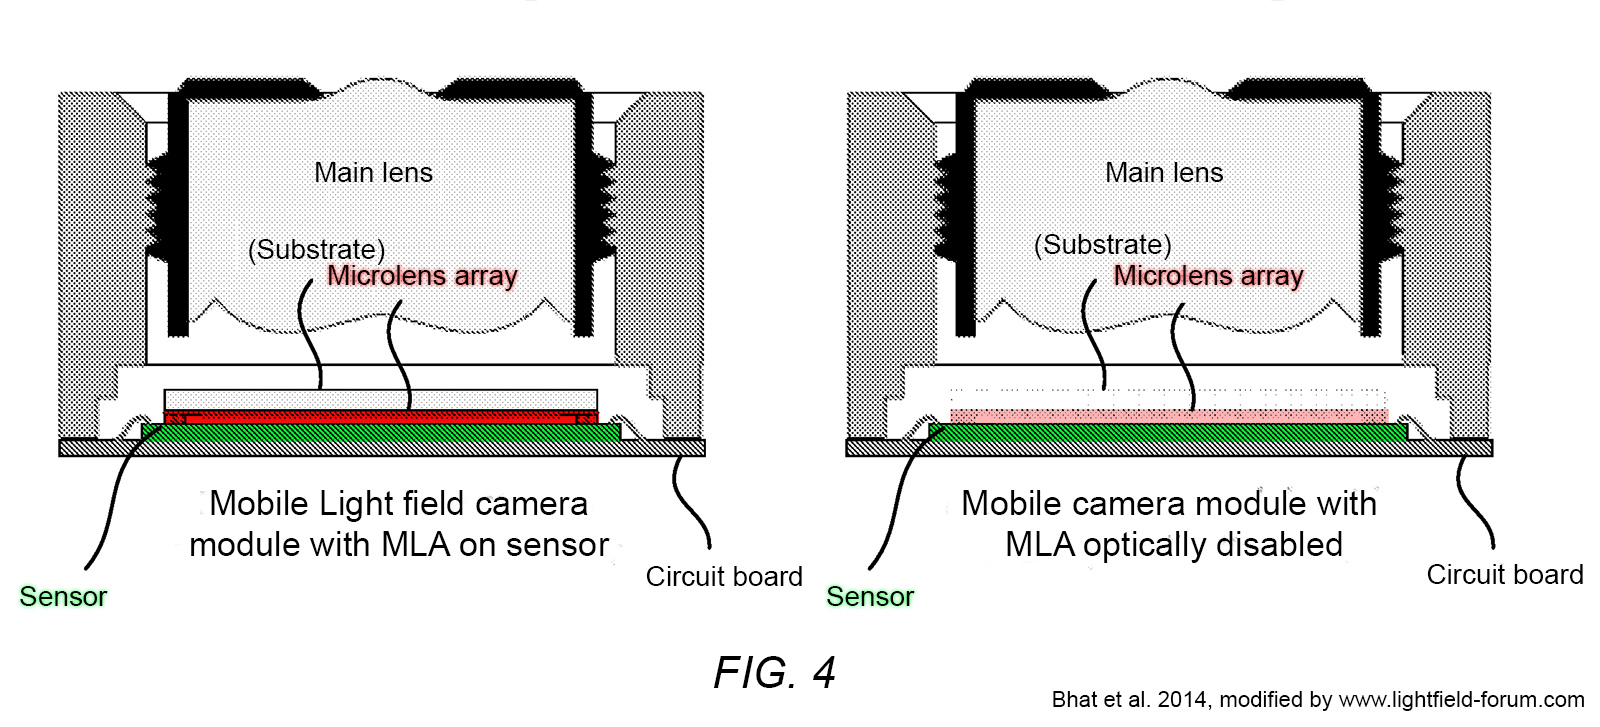 Fig. 4 from the patent application depicts an architecture for a light field camera suitable for mobile applications, wherein the MLA can be optically disabled to enable higher resolution 2D image capture. (modified after Bhat et al., 2014)